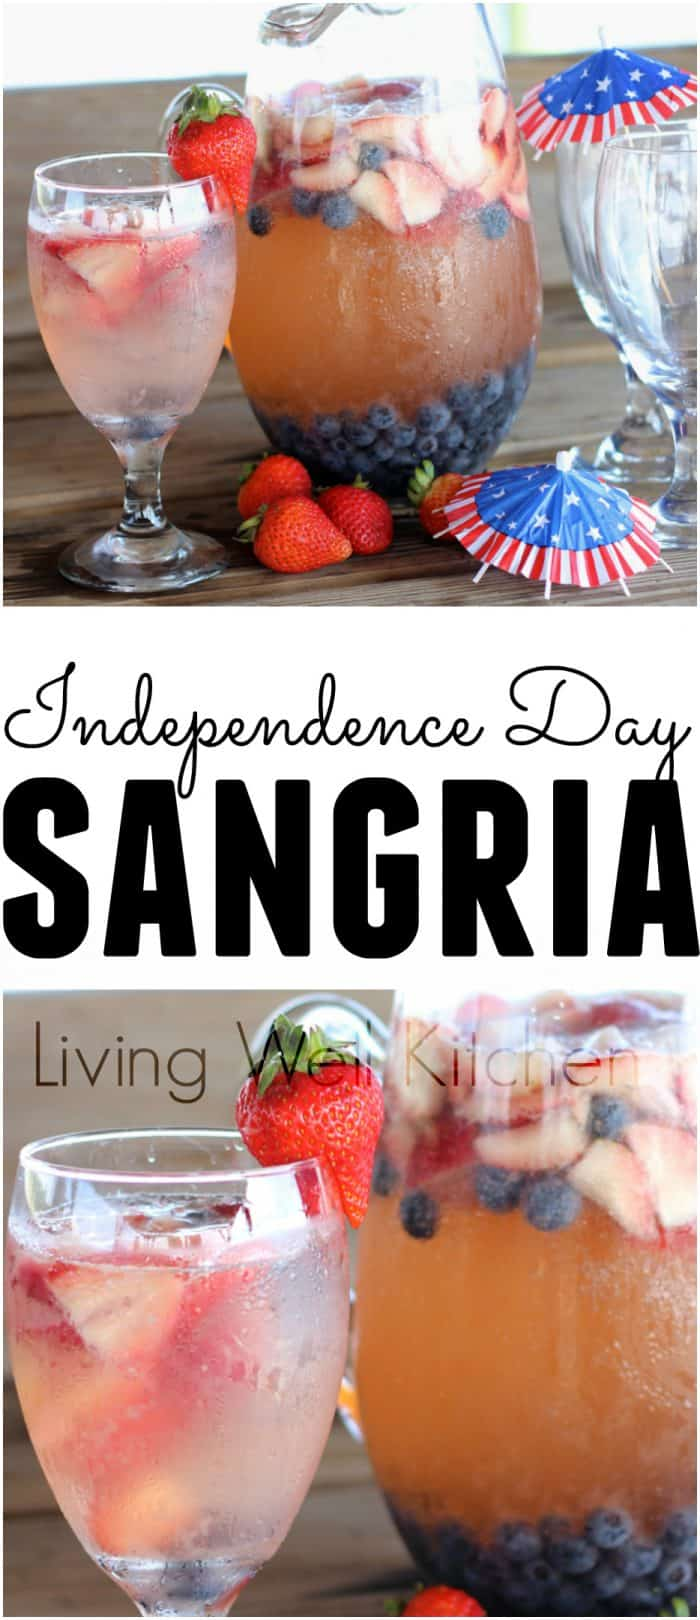 photo collage of independence day sangria